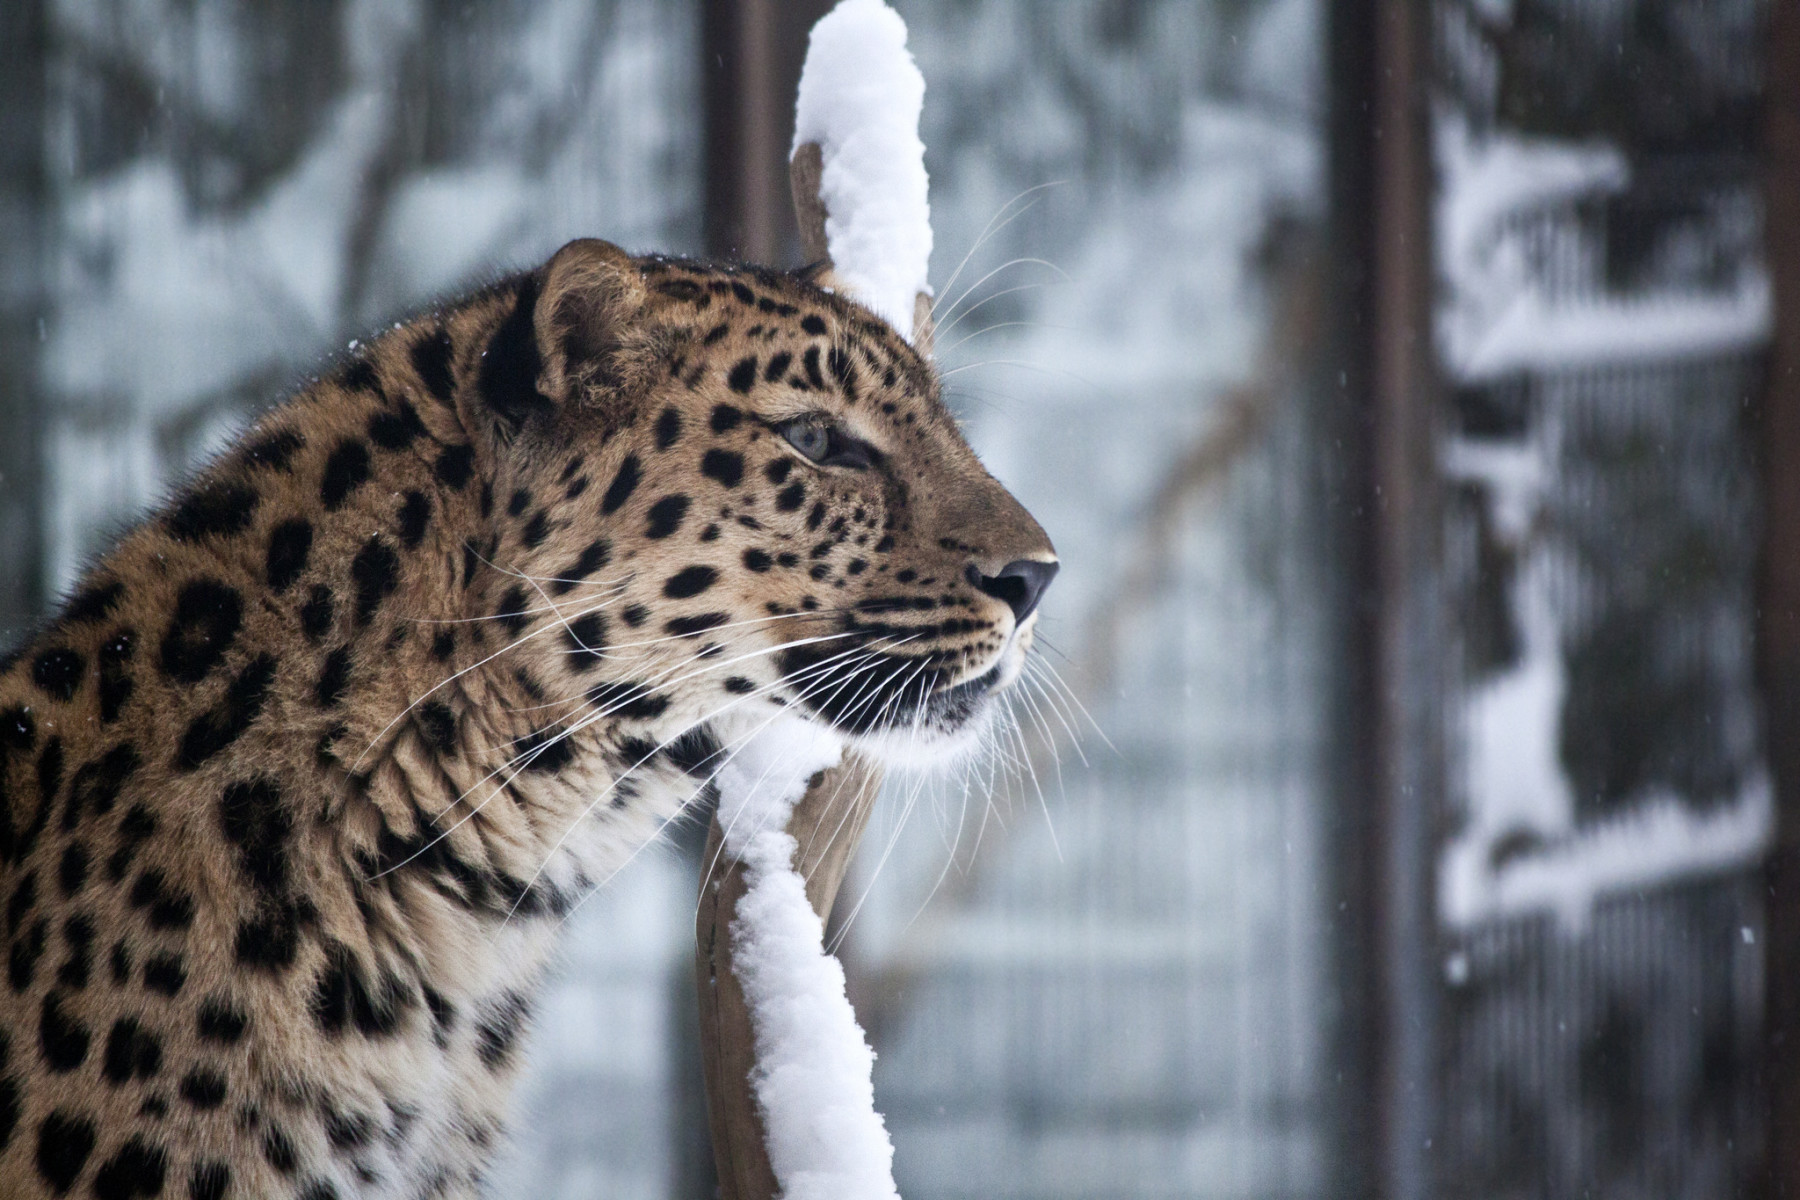 Only 60-80 Amur leopards are left in the wild, but more than 20 cubs have been bred in Helsinki as part of an international conservation programme.